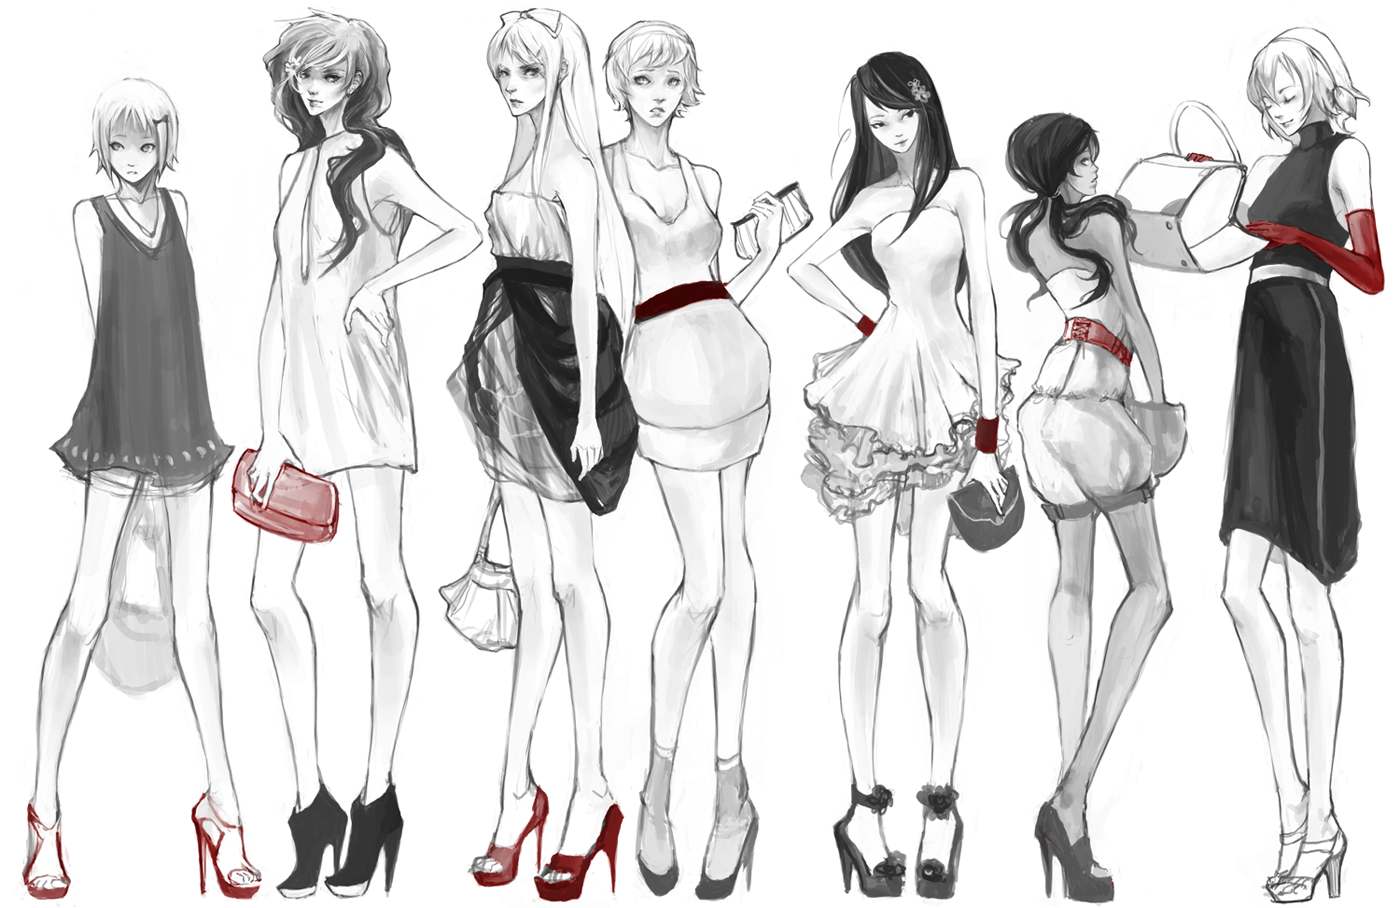 red and heels by hakuku